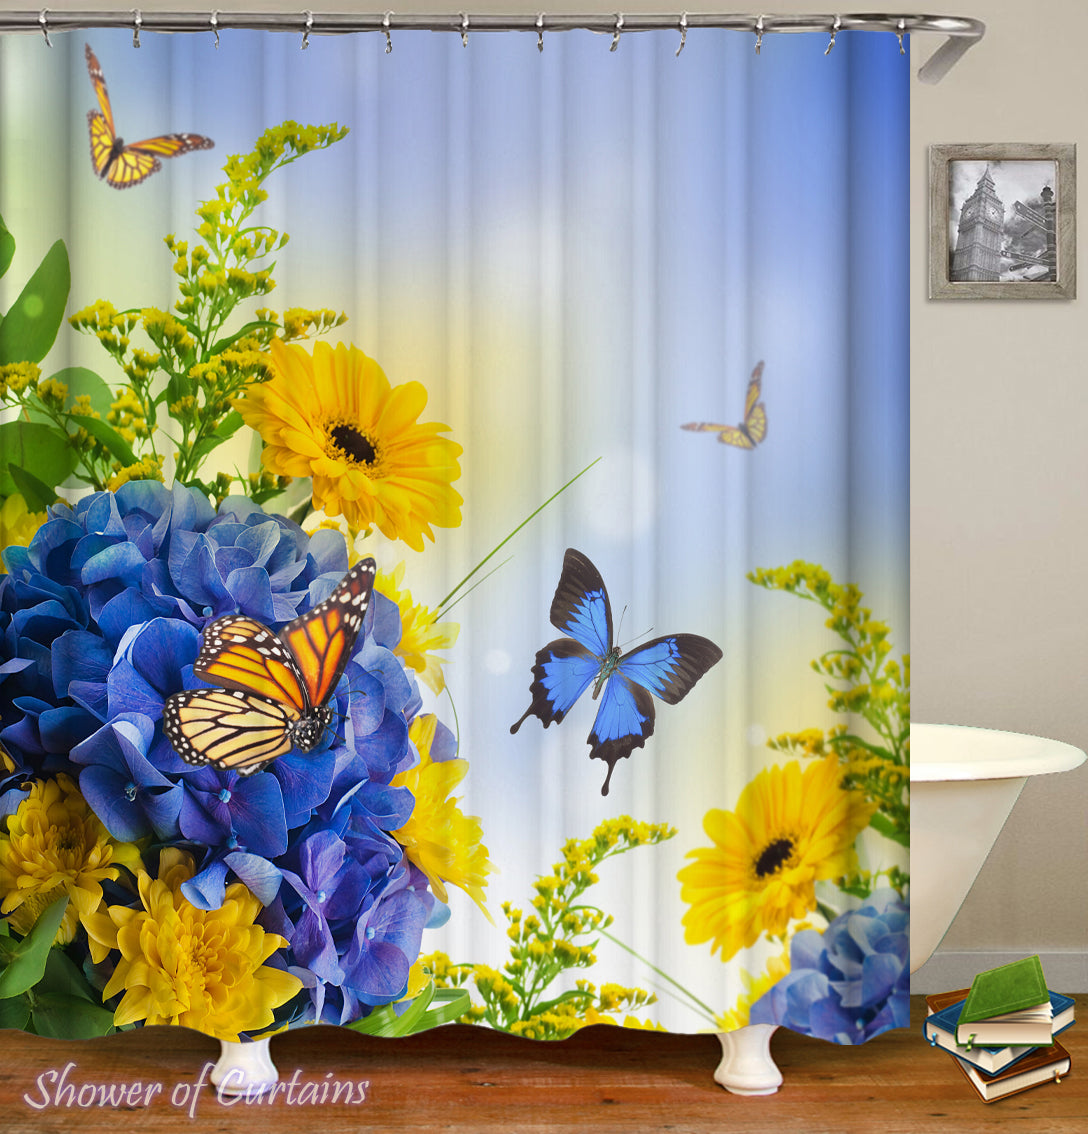 Shower curtains blue and yellow flowers ft butterflies shower floral shower curtain blue and yellow flowers ft butterflies mightylinksfo